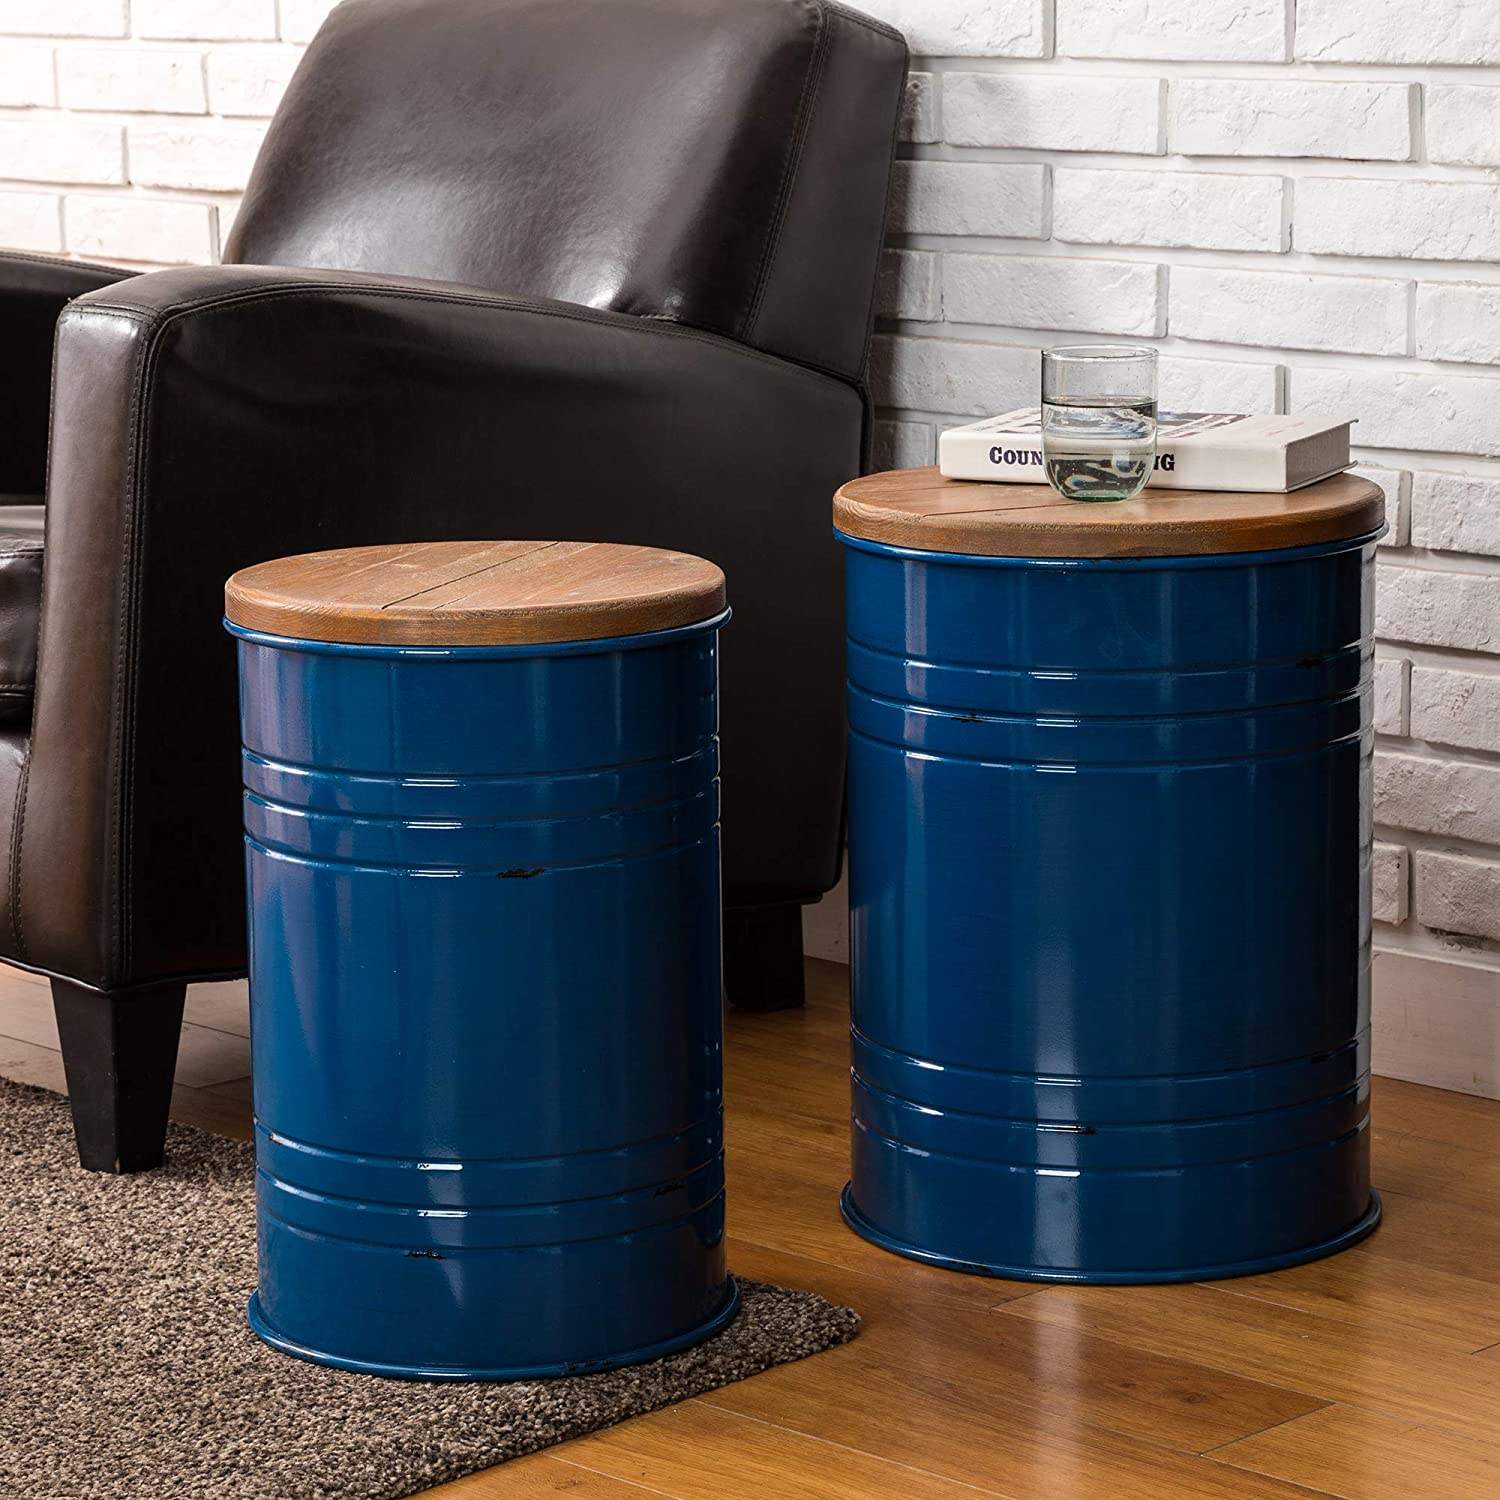 Glitzhome Rustic Storage Ottoman Seat Stool, Farmhouse End Table, Galvanized Metal Accent Side Table Toy Box Bin with Round Wood Lid for Living Room Furniture, Nesting Pieces Two, Navy Blue